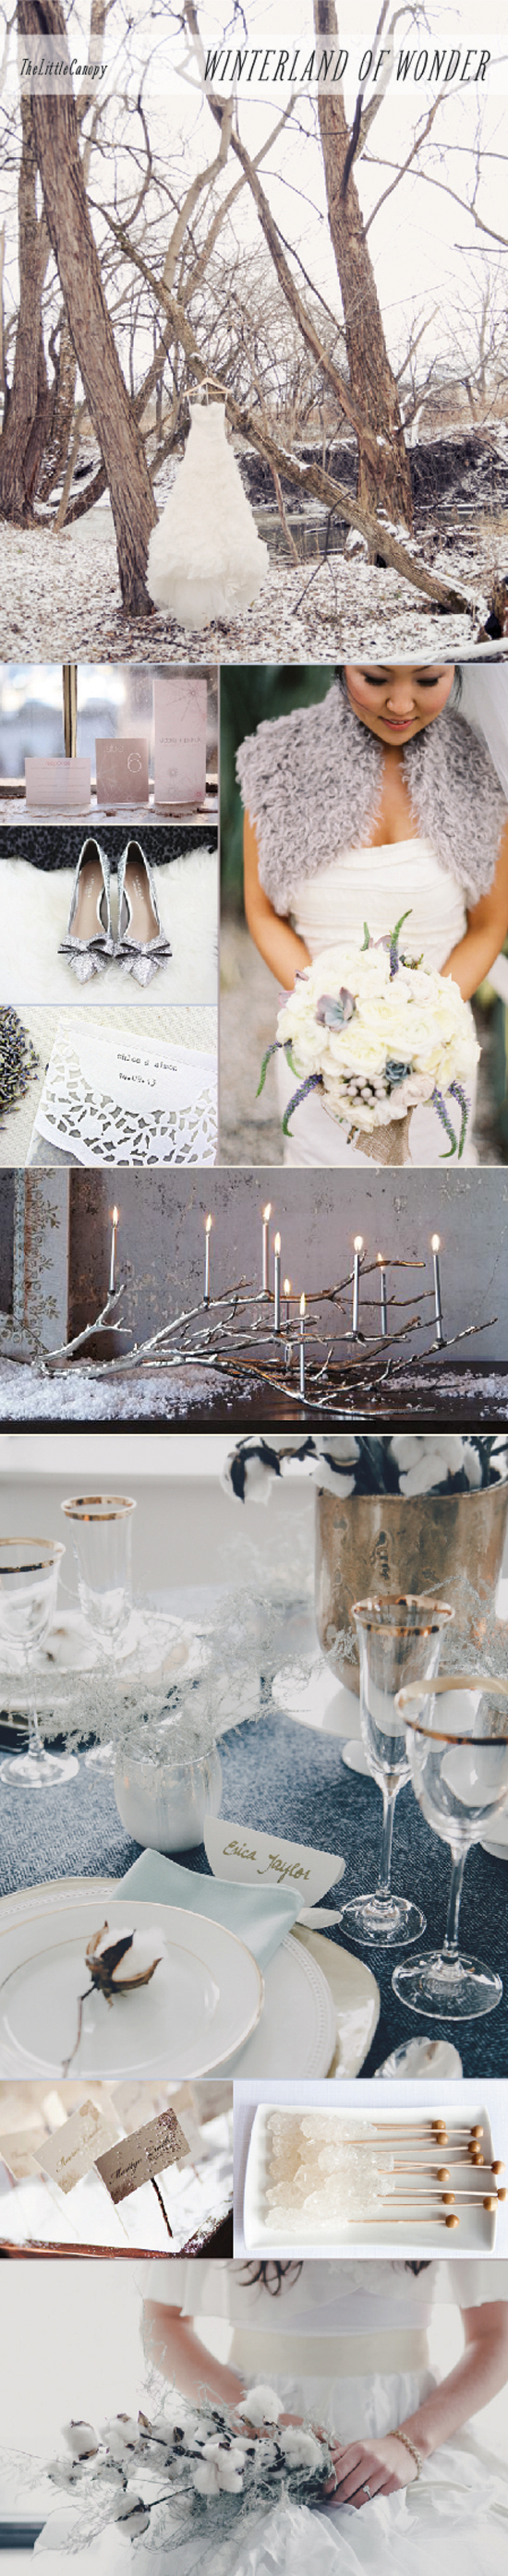 A romantic and timeless wedding theme using elements of winter with intricate textures and forms